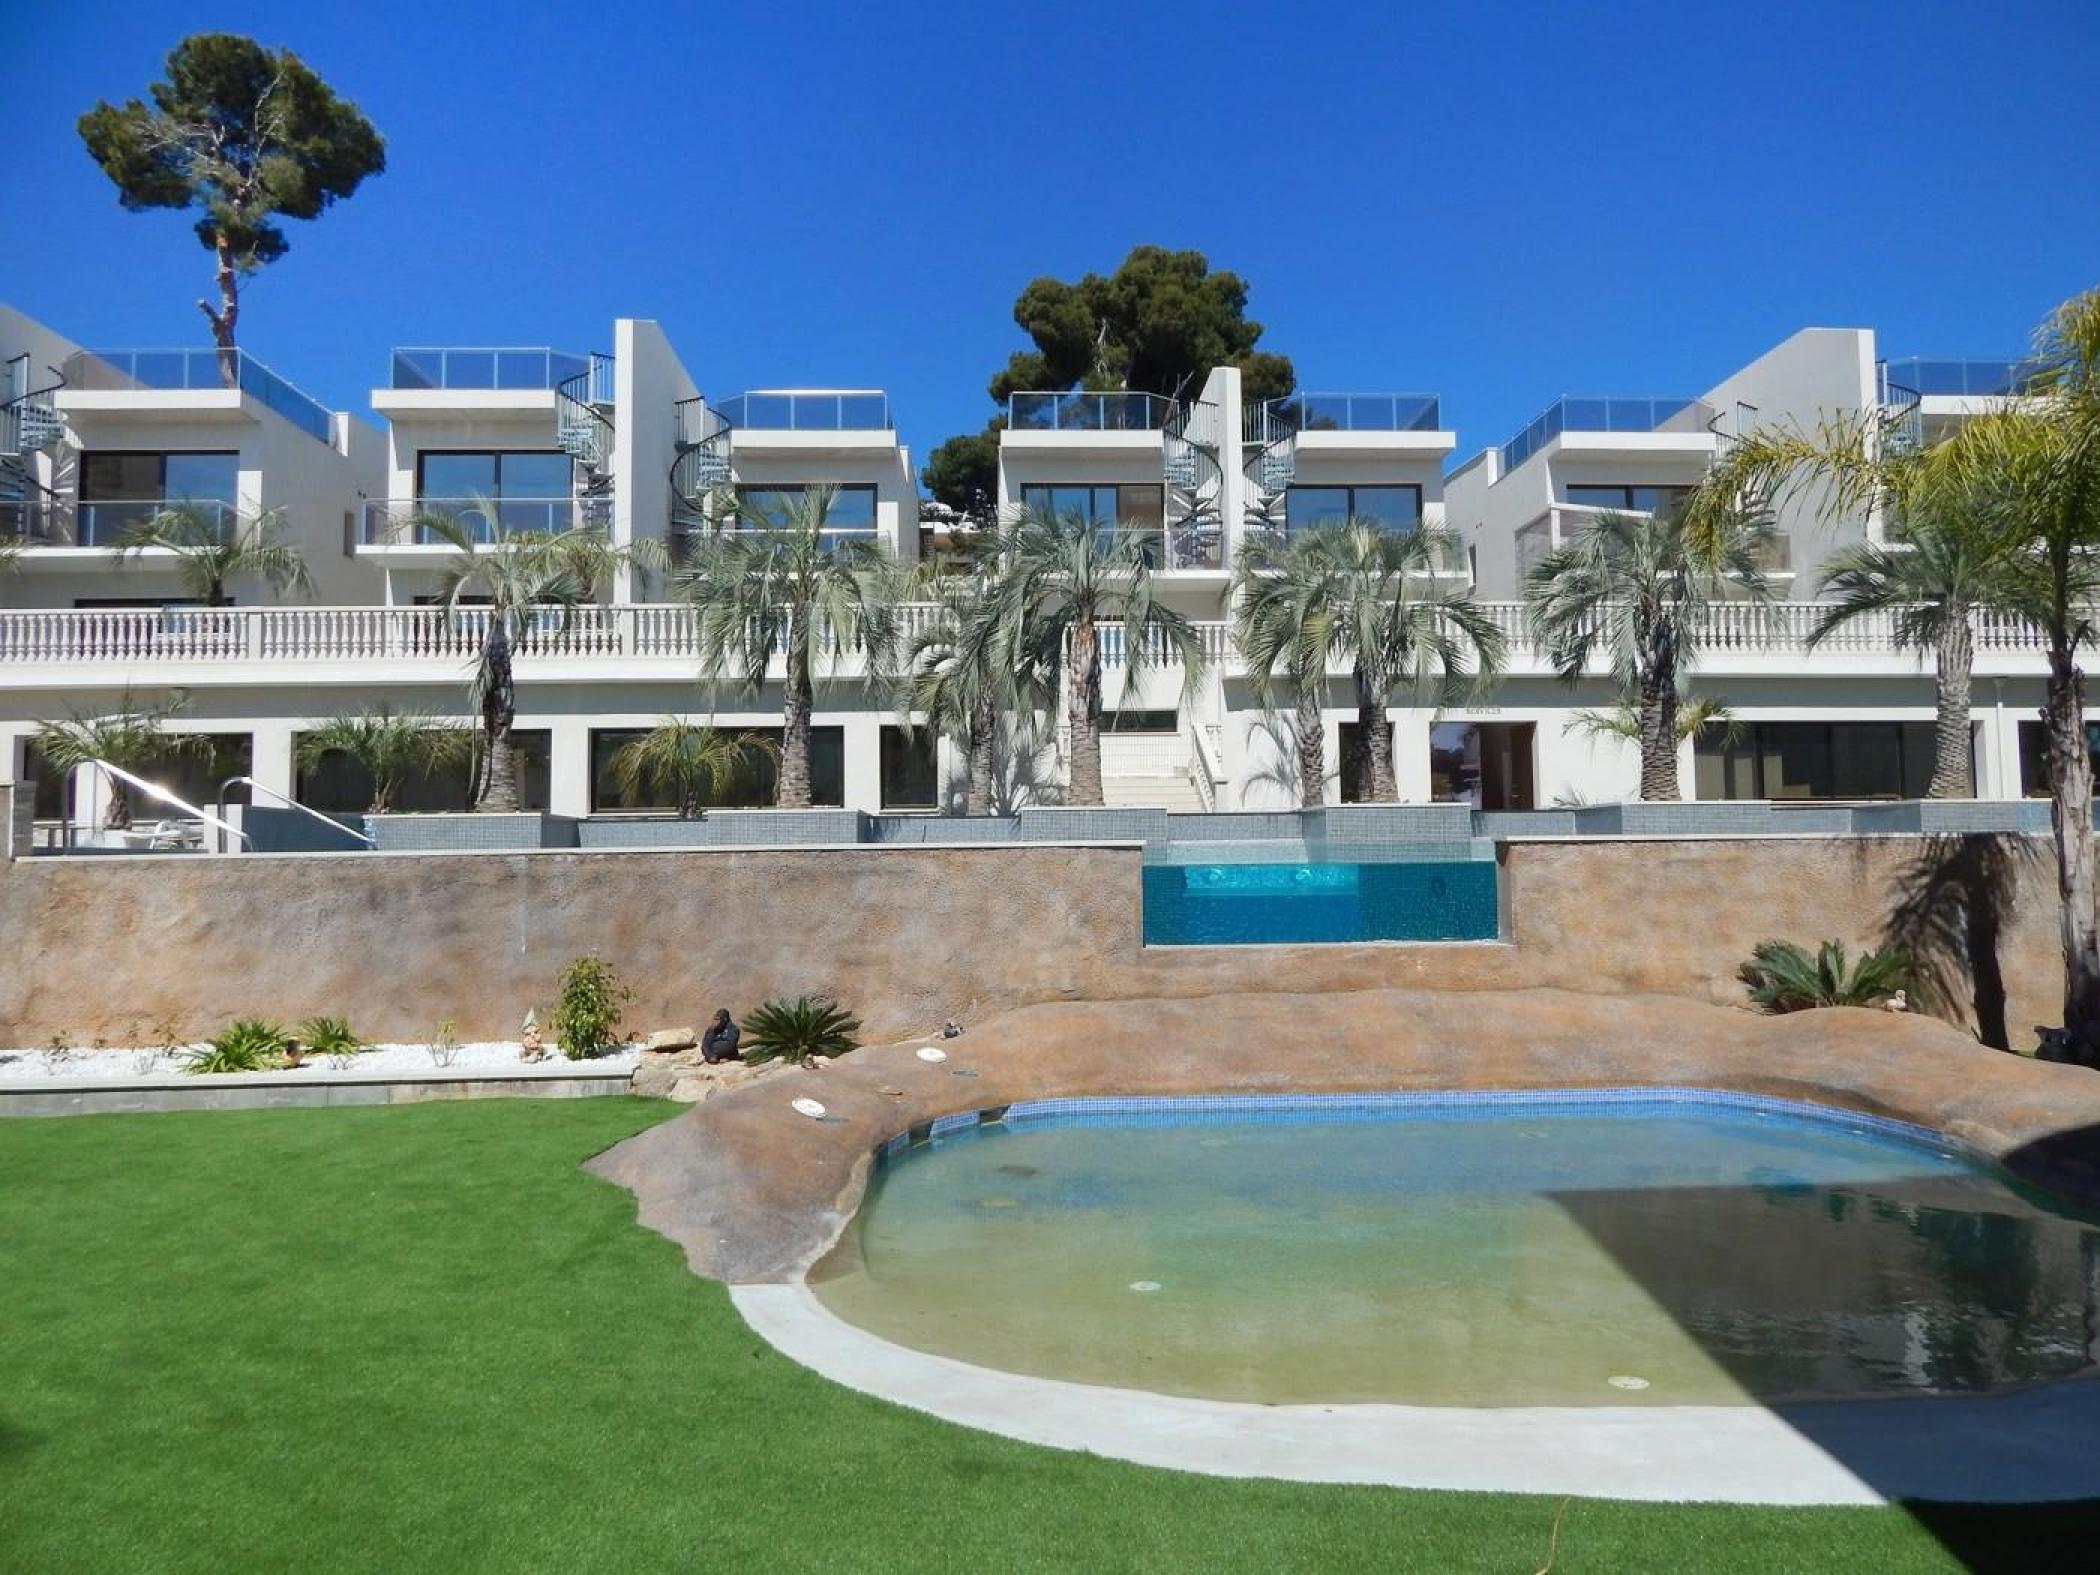 Rent Villa with Swimming pool in Platja d'Aro - Girorooms Travel Calma Holiday Villas jacuzzi 11 - 39